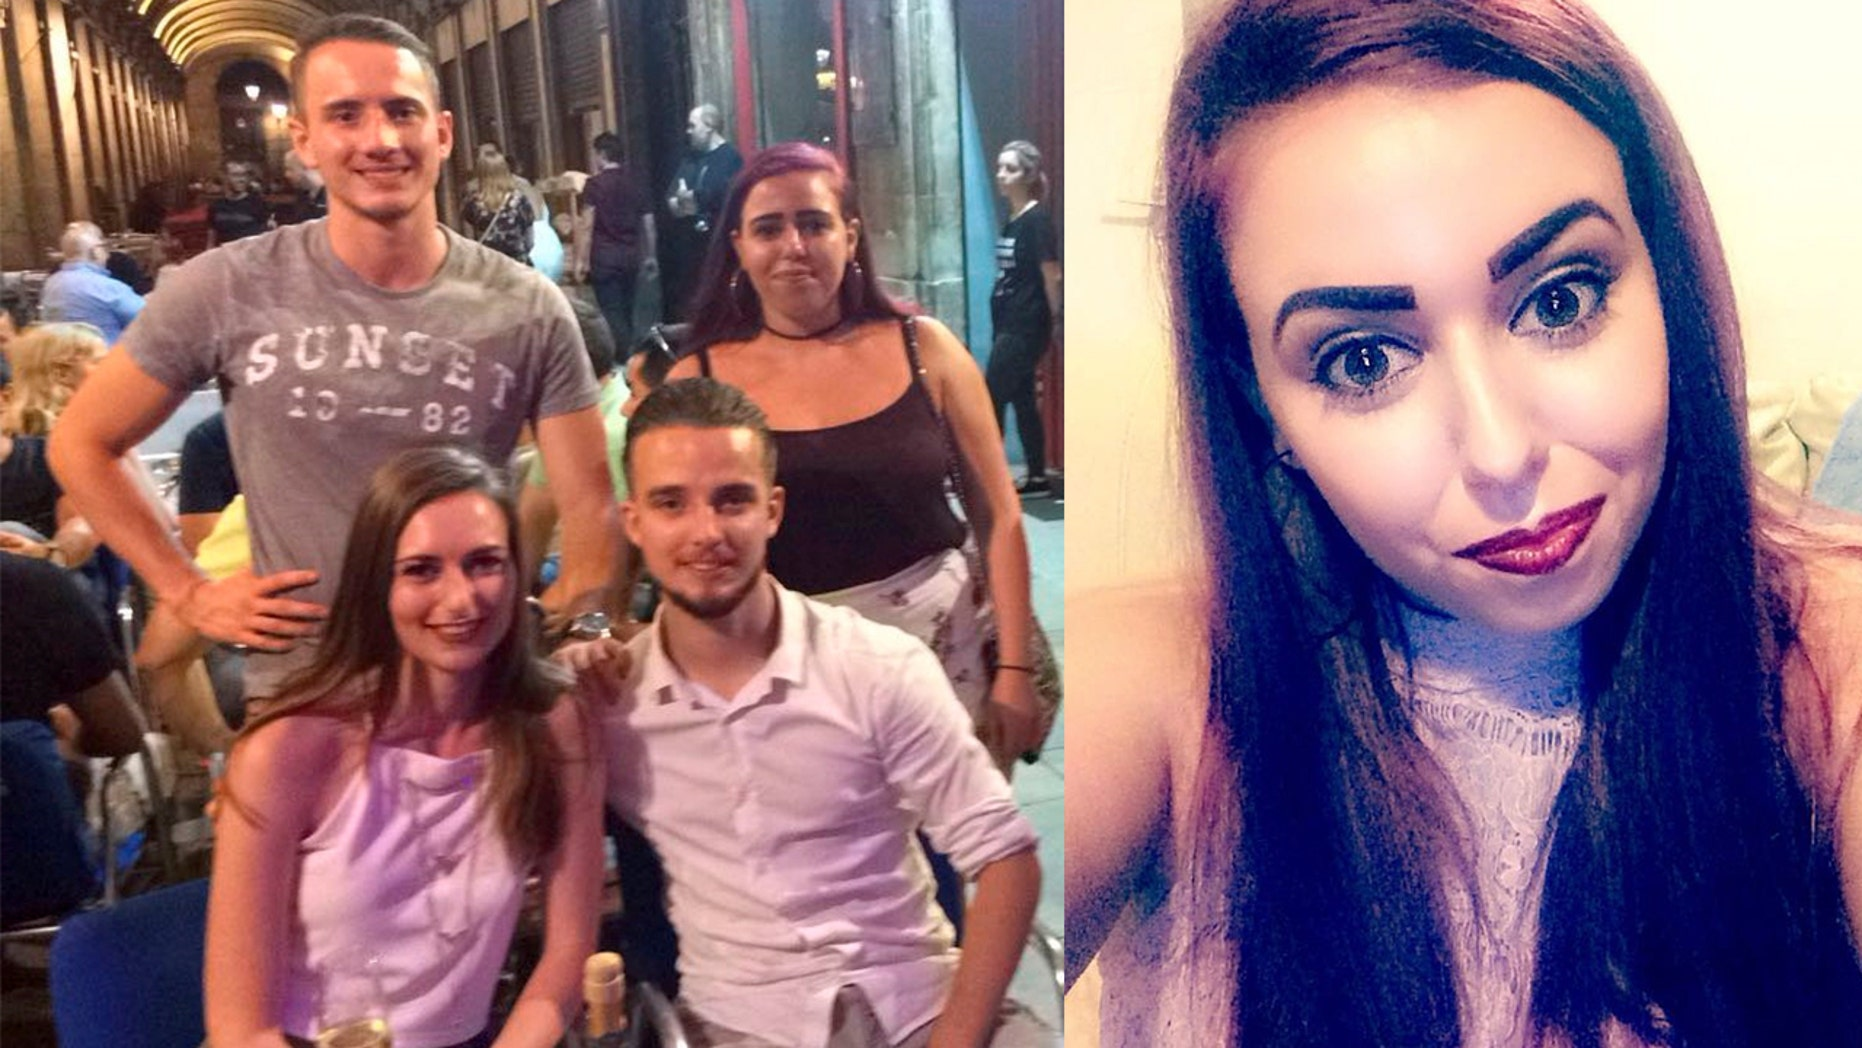 Sophie Stevenson says what she thought was a 'perfect holiday romance' with Jesse Mateman, top left, turned out to be a cruel joke.